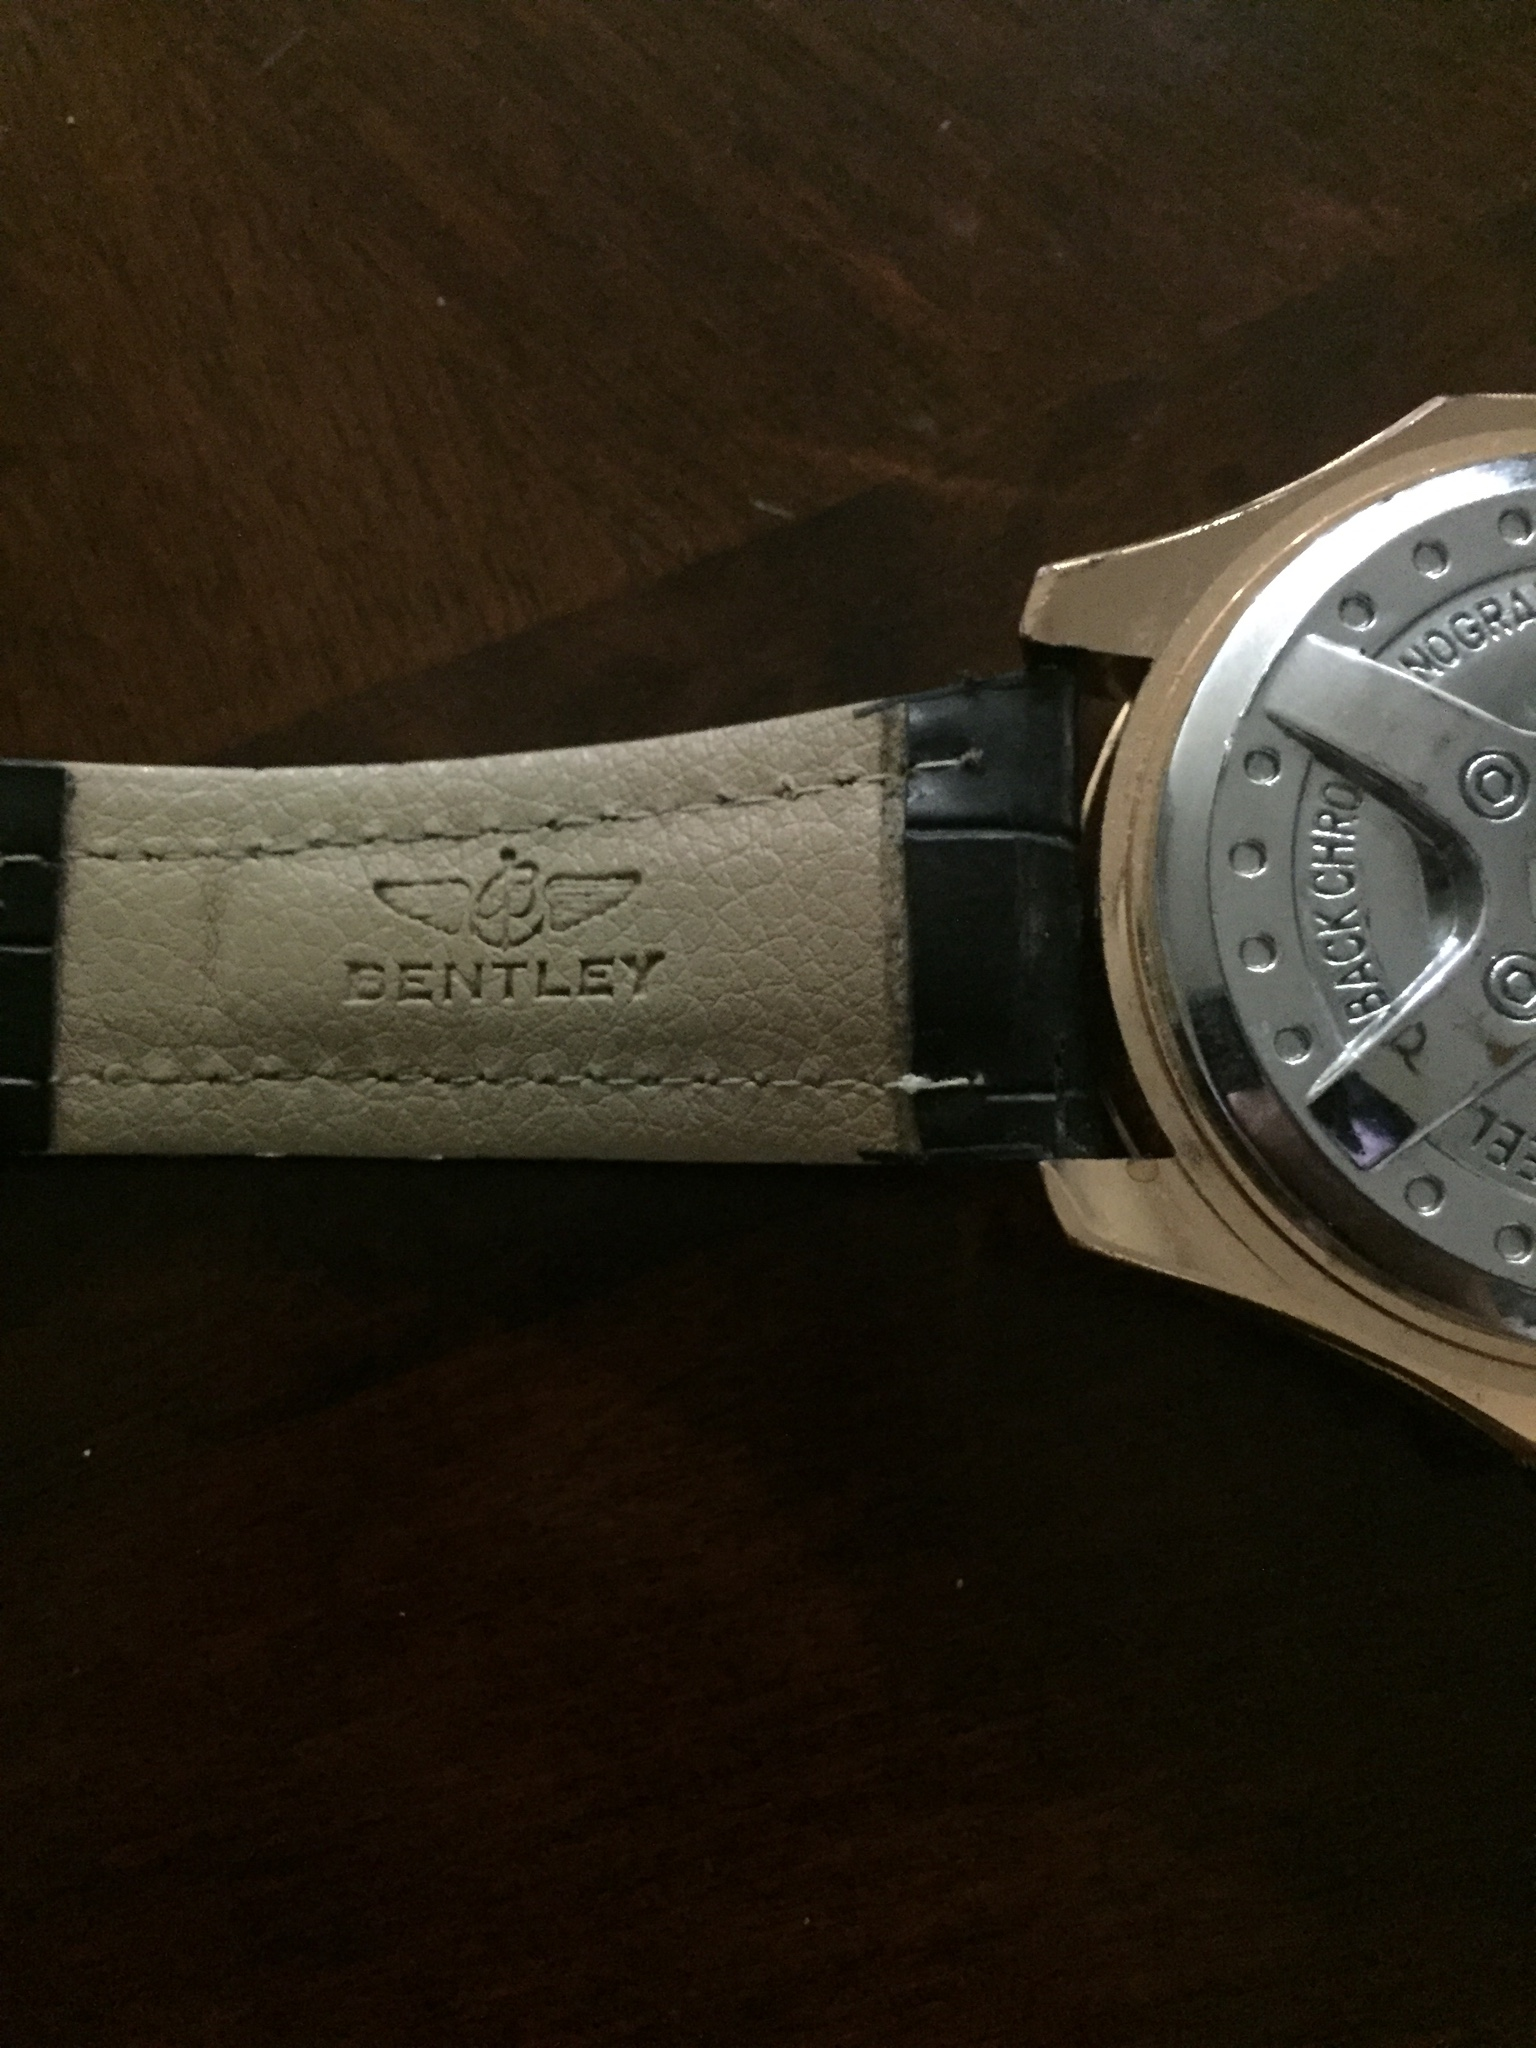 how to tell fake breitling watches